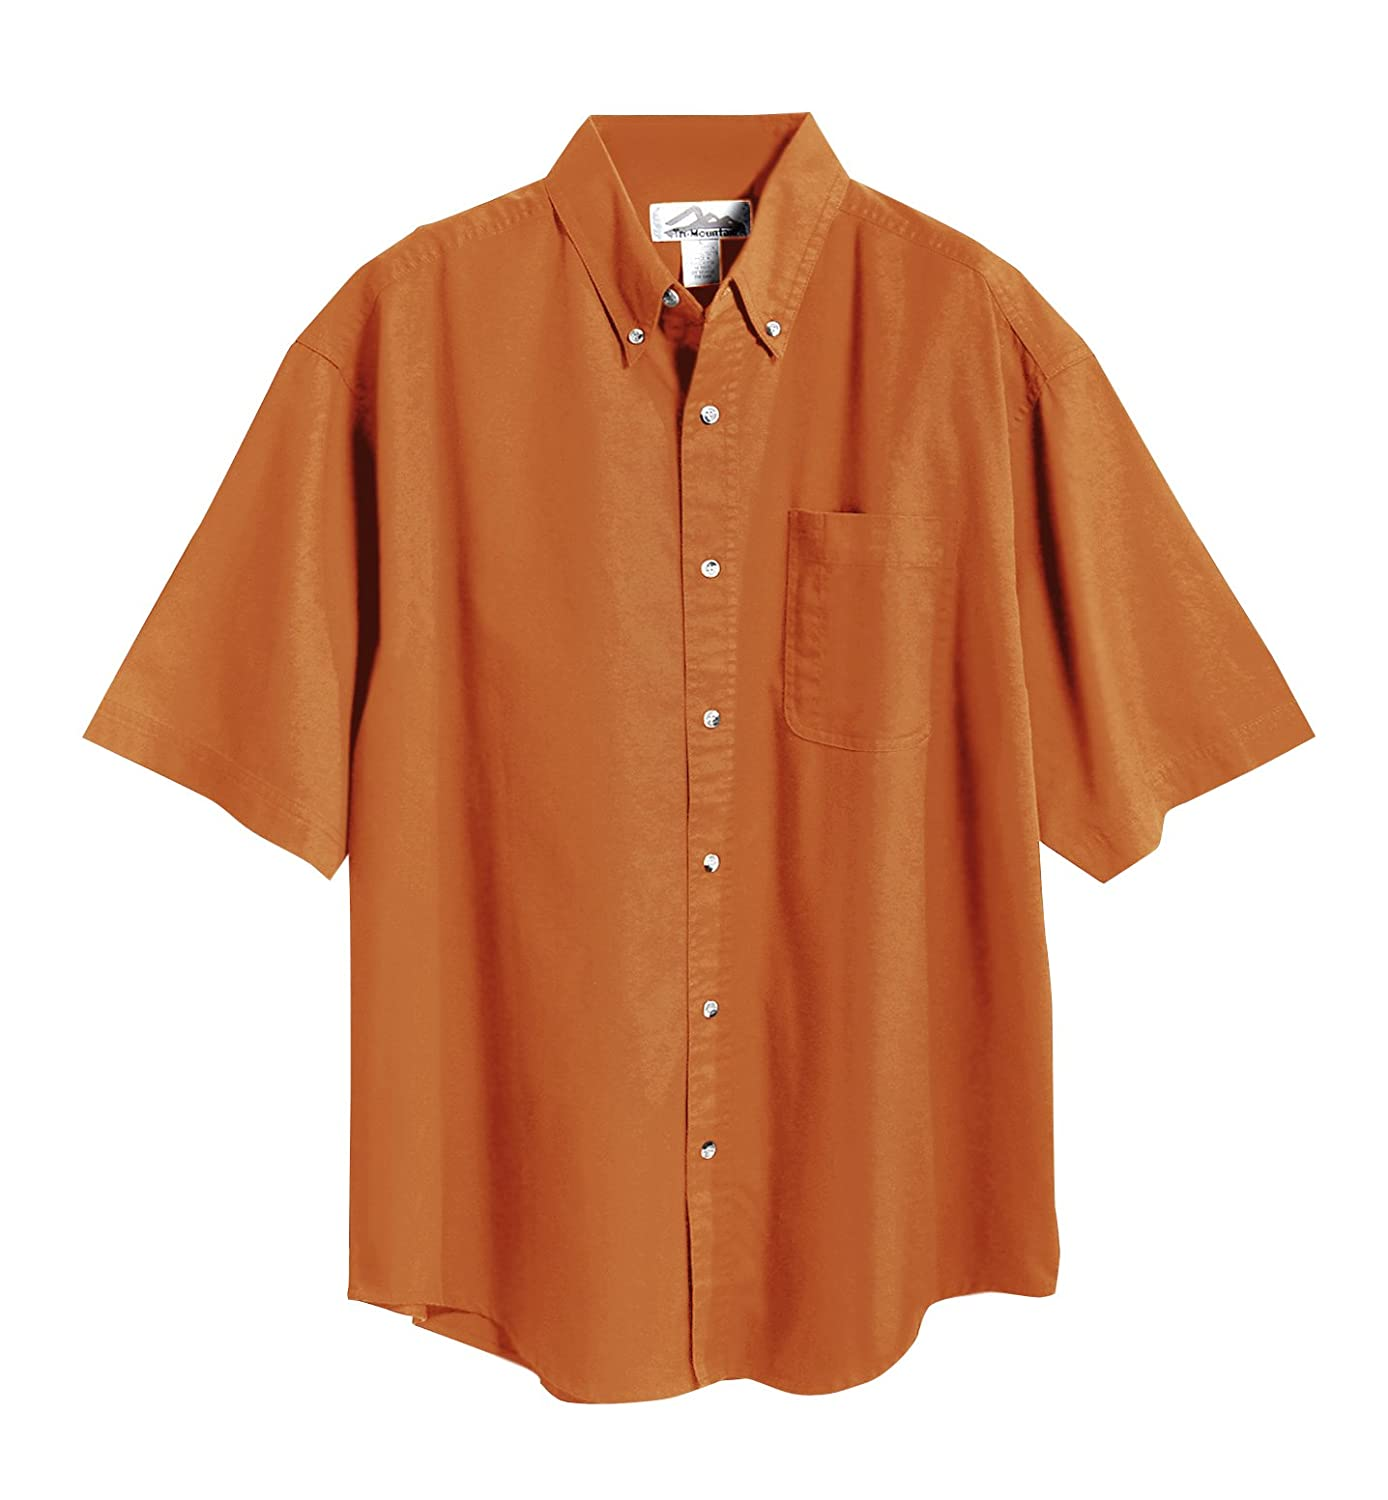 Big and Tall Short Sleeved Twill Shirts a lot of Colors up to 6XT